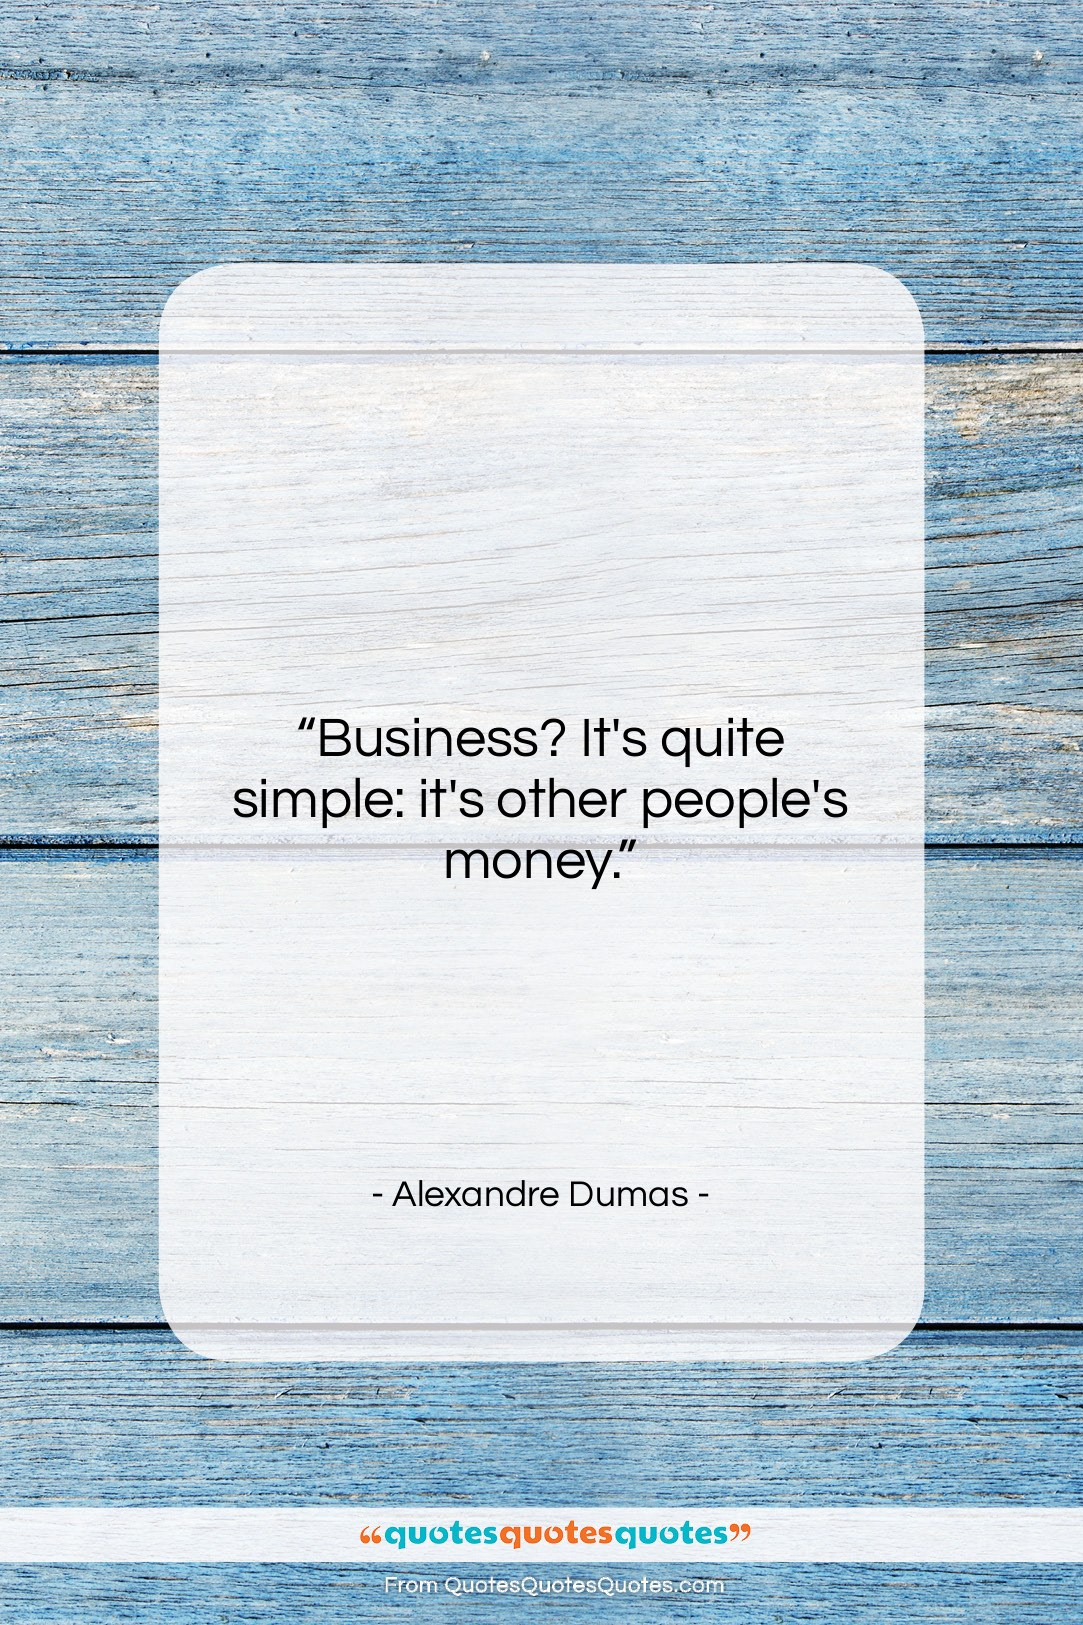 """Alexandre Dumas quote: """"Business? It's quite simple: it's other people's…""""- at QuotesQuotesQuotes.com"""